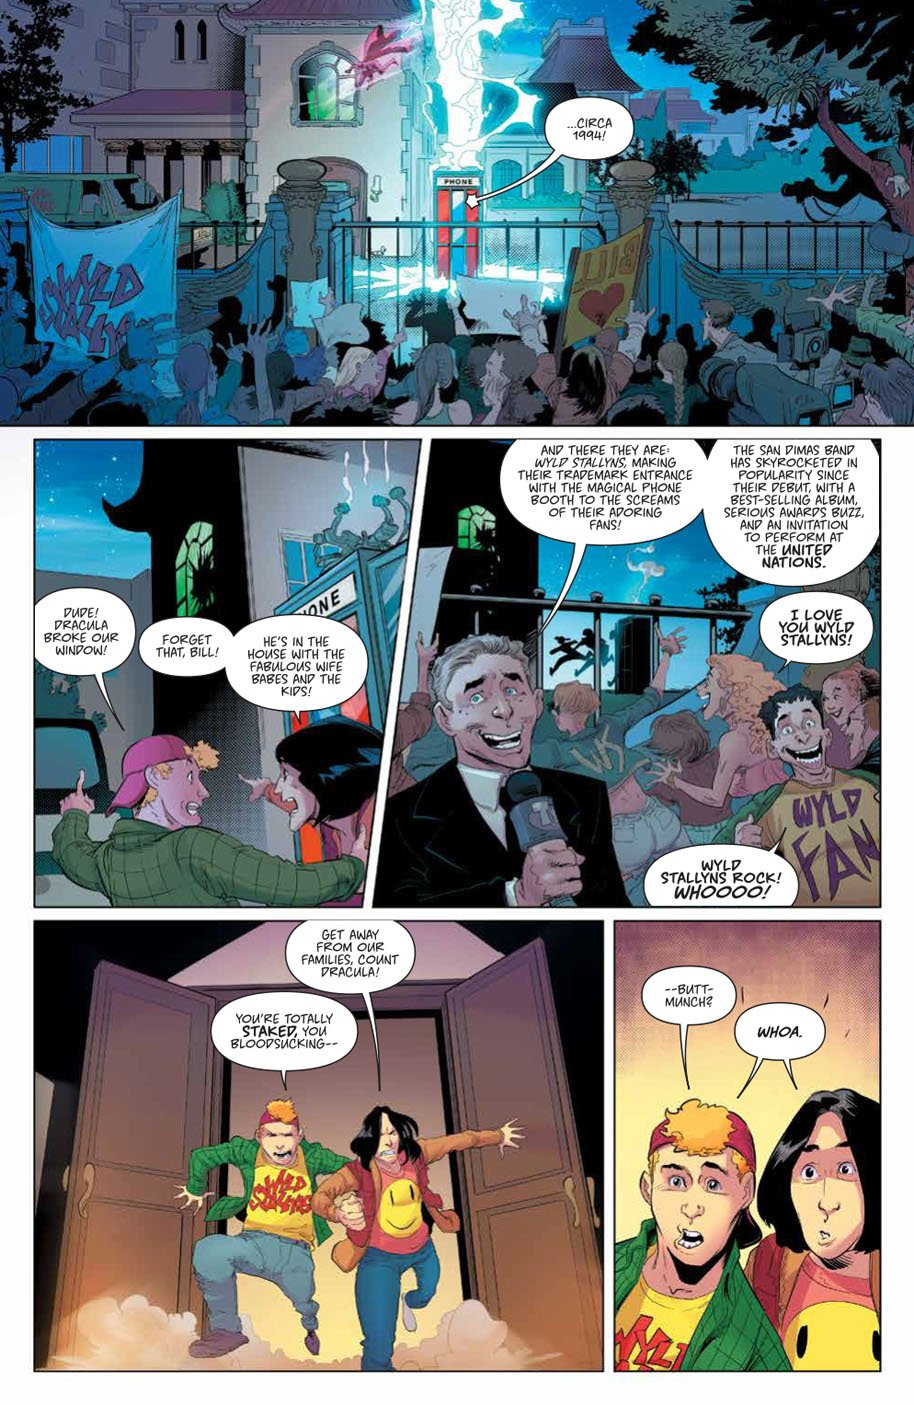 Bill & Ted Save the Universe 1 page 5